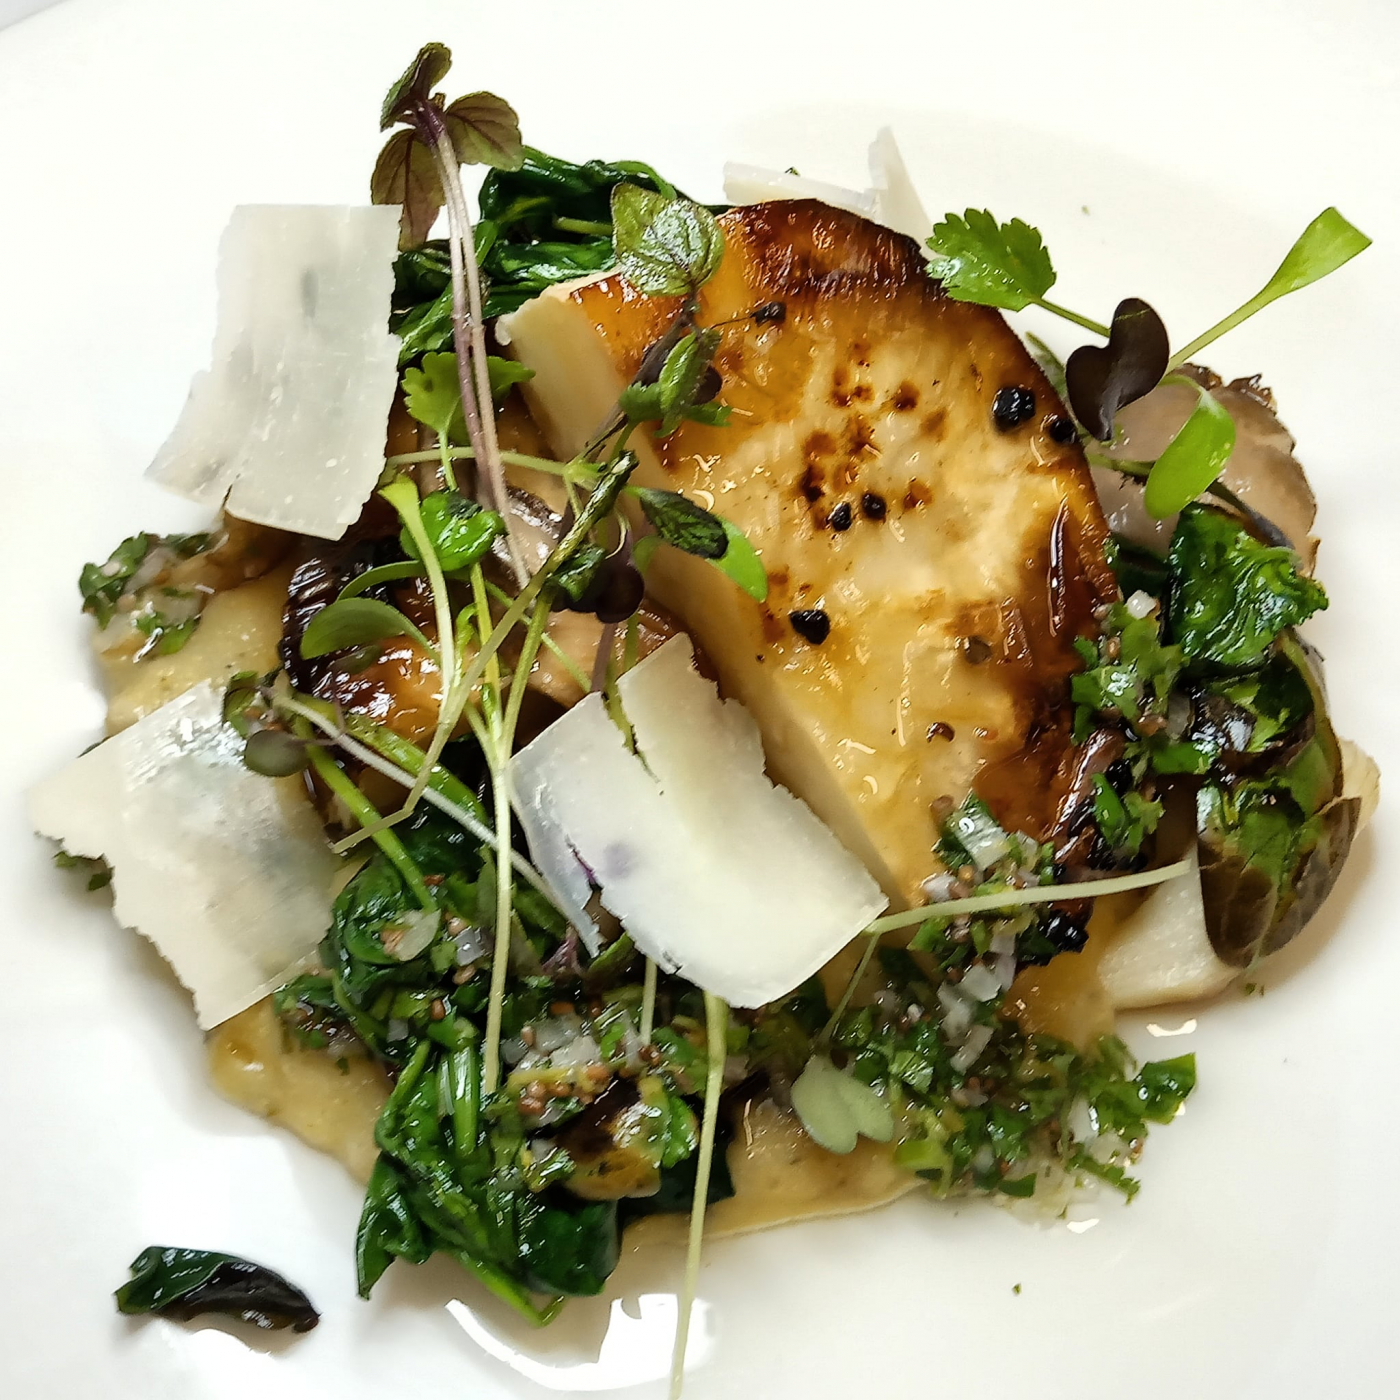 Celeriac slow roasted in garlic and herbs, black truffle polenta, forest mushrooms, gremolata, shaved parmesan